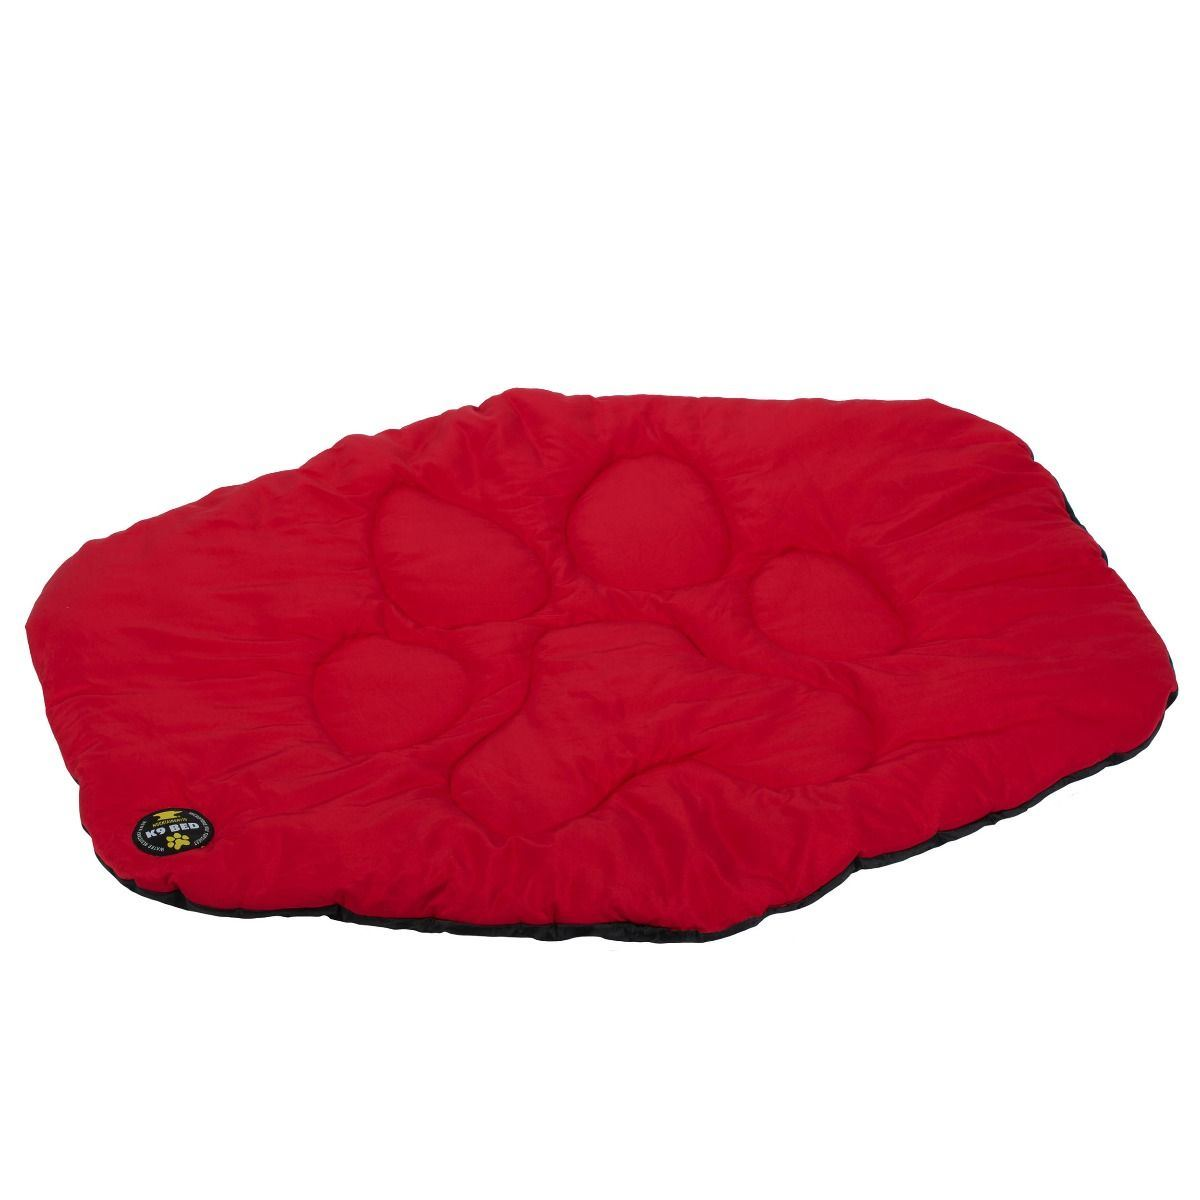 K-9 BED - HERITAGE RED